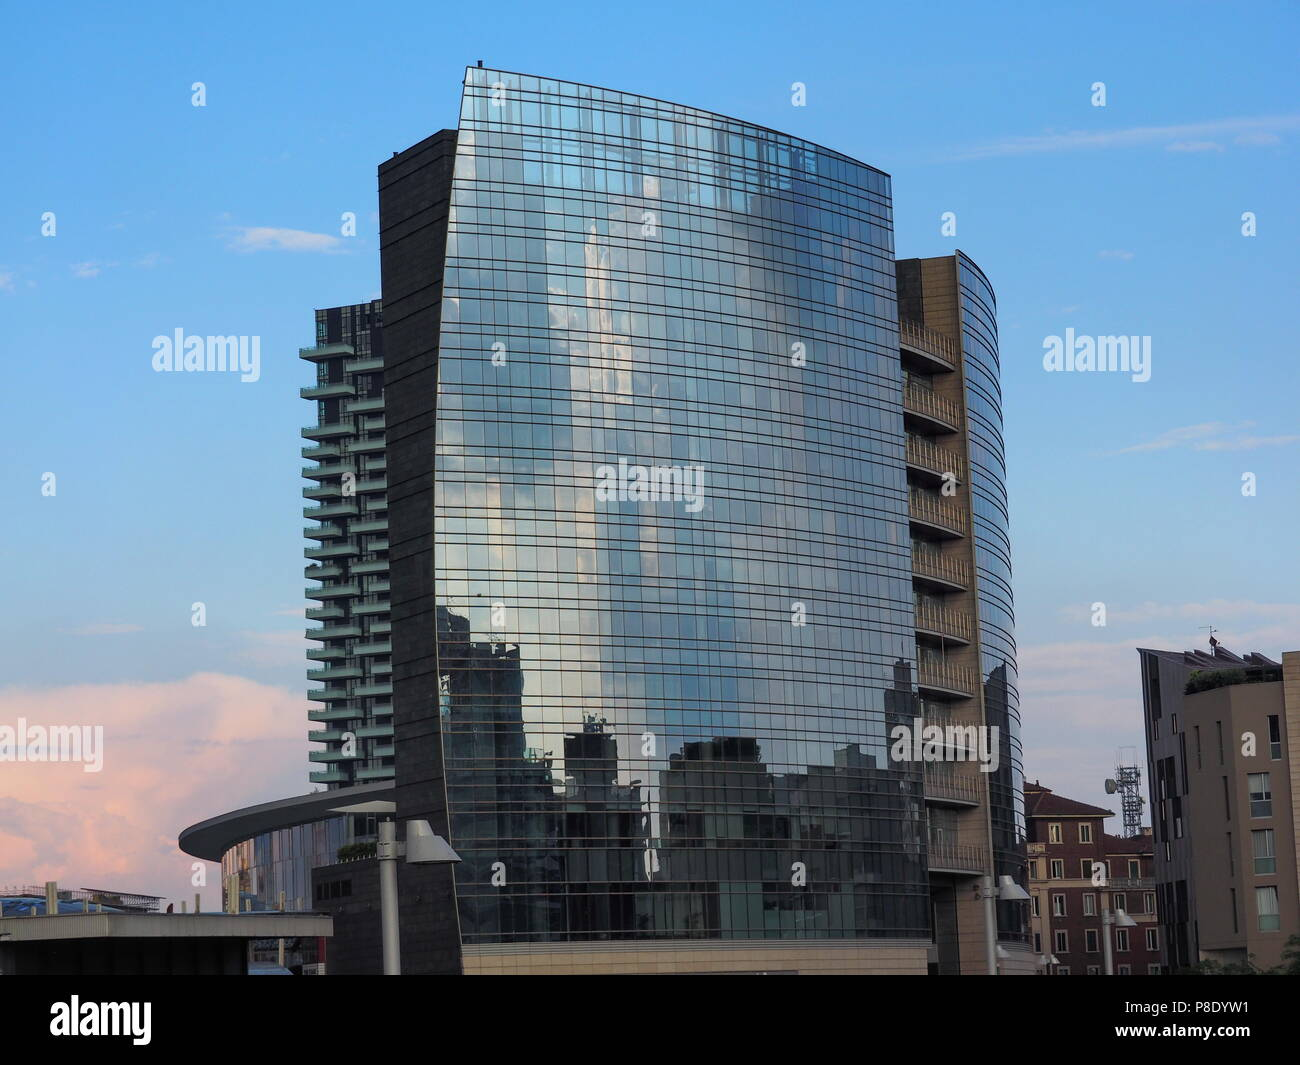 MILAN, ITALY-MAY 12, 2018: Maire Tecnimont skyscraper tower in Porta Garibaldi area, Milan, Lombardy. - Stock Photo